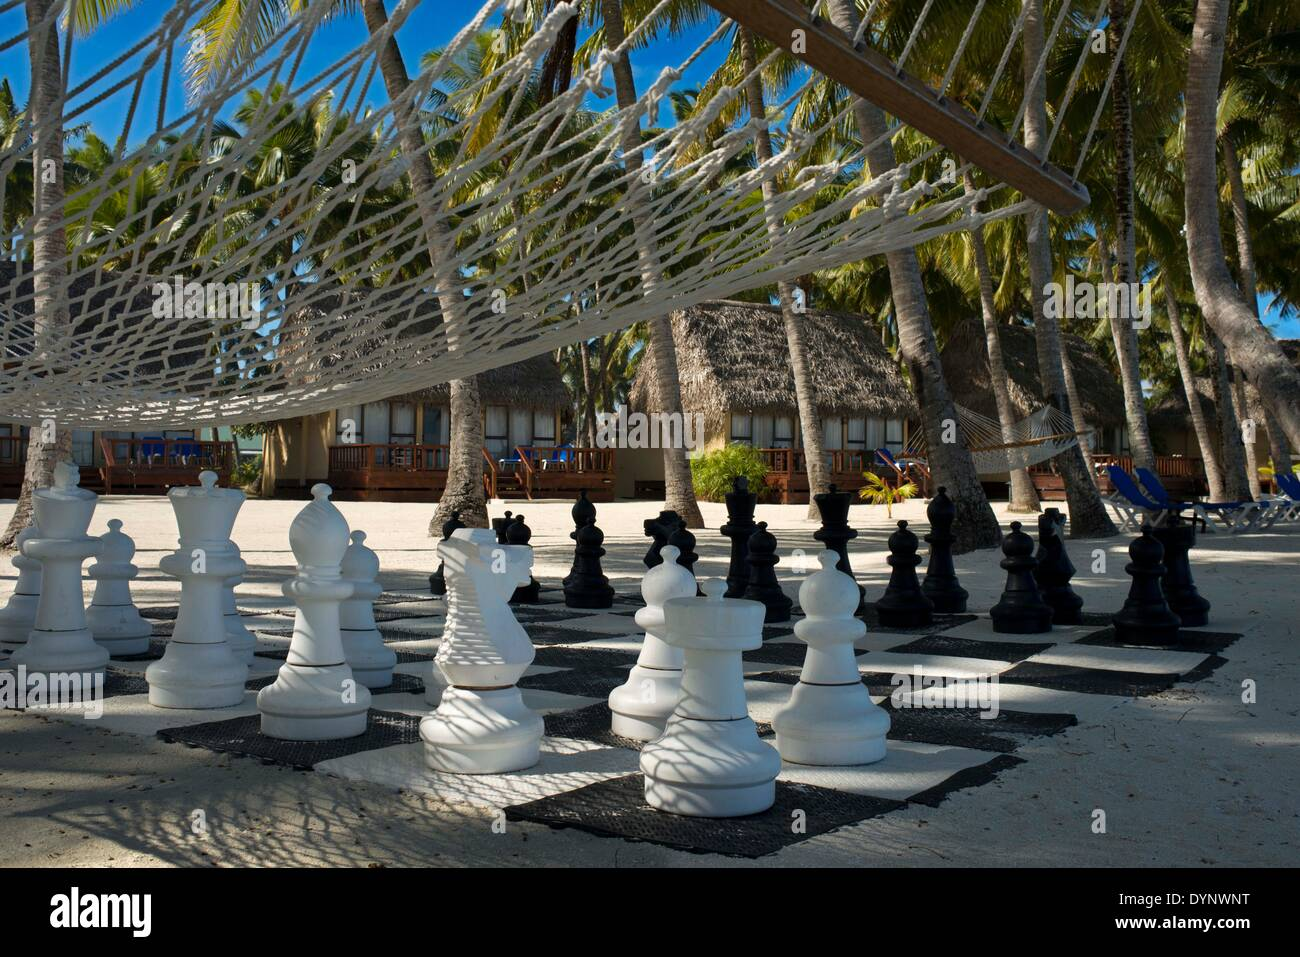 Aitutaki. Cook Island. Polynesia. South Pacific Ocean. Giant chess set on the beach of the Aitutaki Lagoon Resort & Spa Hotel. With a lagoon that is arguably one of the most beautiful in the world, a cruise out on its pristine water is an absolute must. You are likely to be so enchanted, that you'll book another tour for the next day. Back on land, the island of Aitutaki has an interesting history and there are excavations of local marae underway. You can take a safari tour to these ancient places, explore the island and also find out about the legacy of the American troops stationed here duri - Stock Image